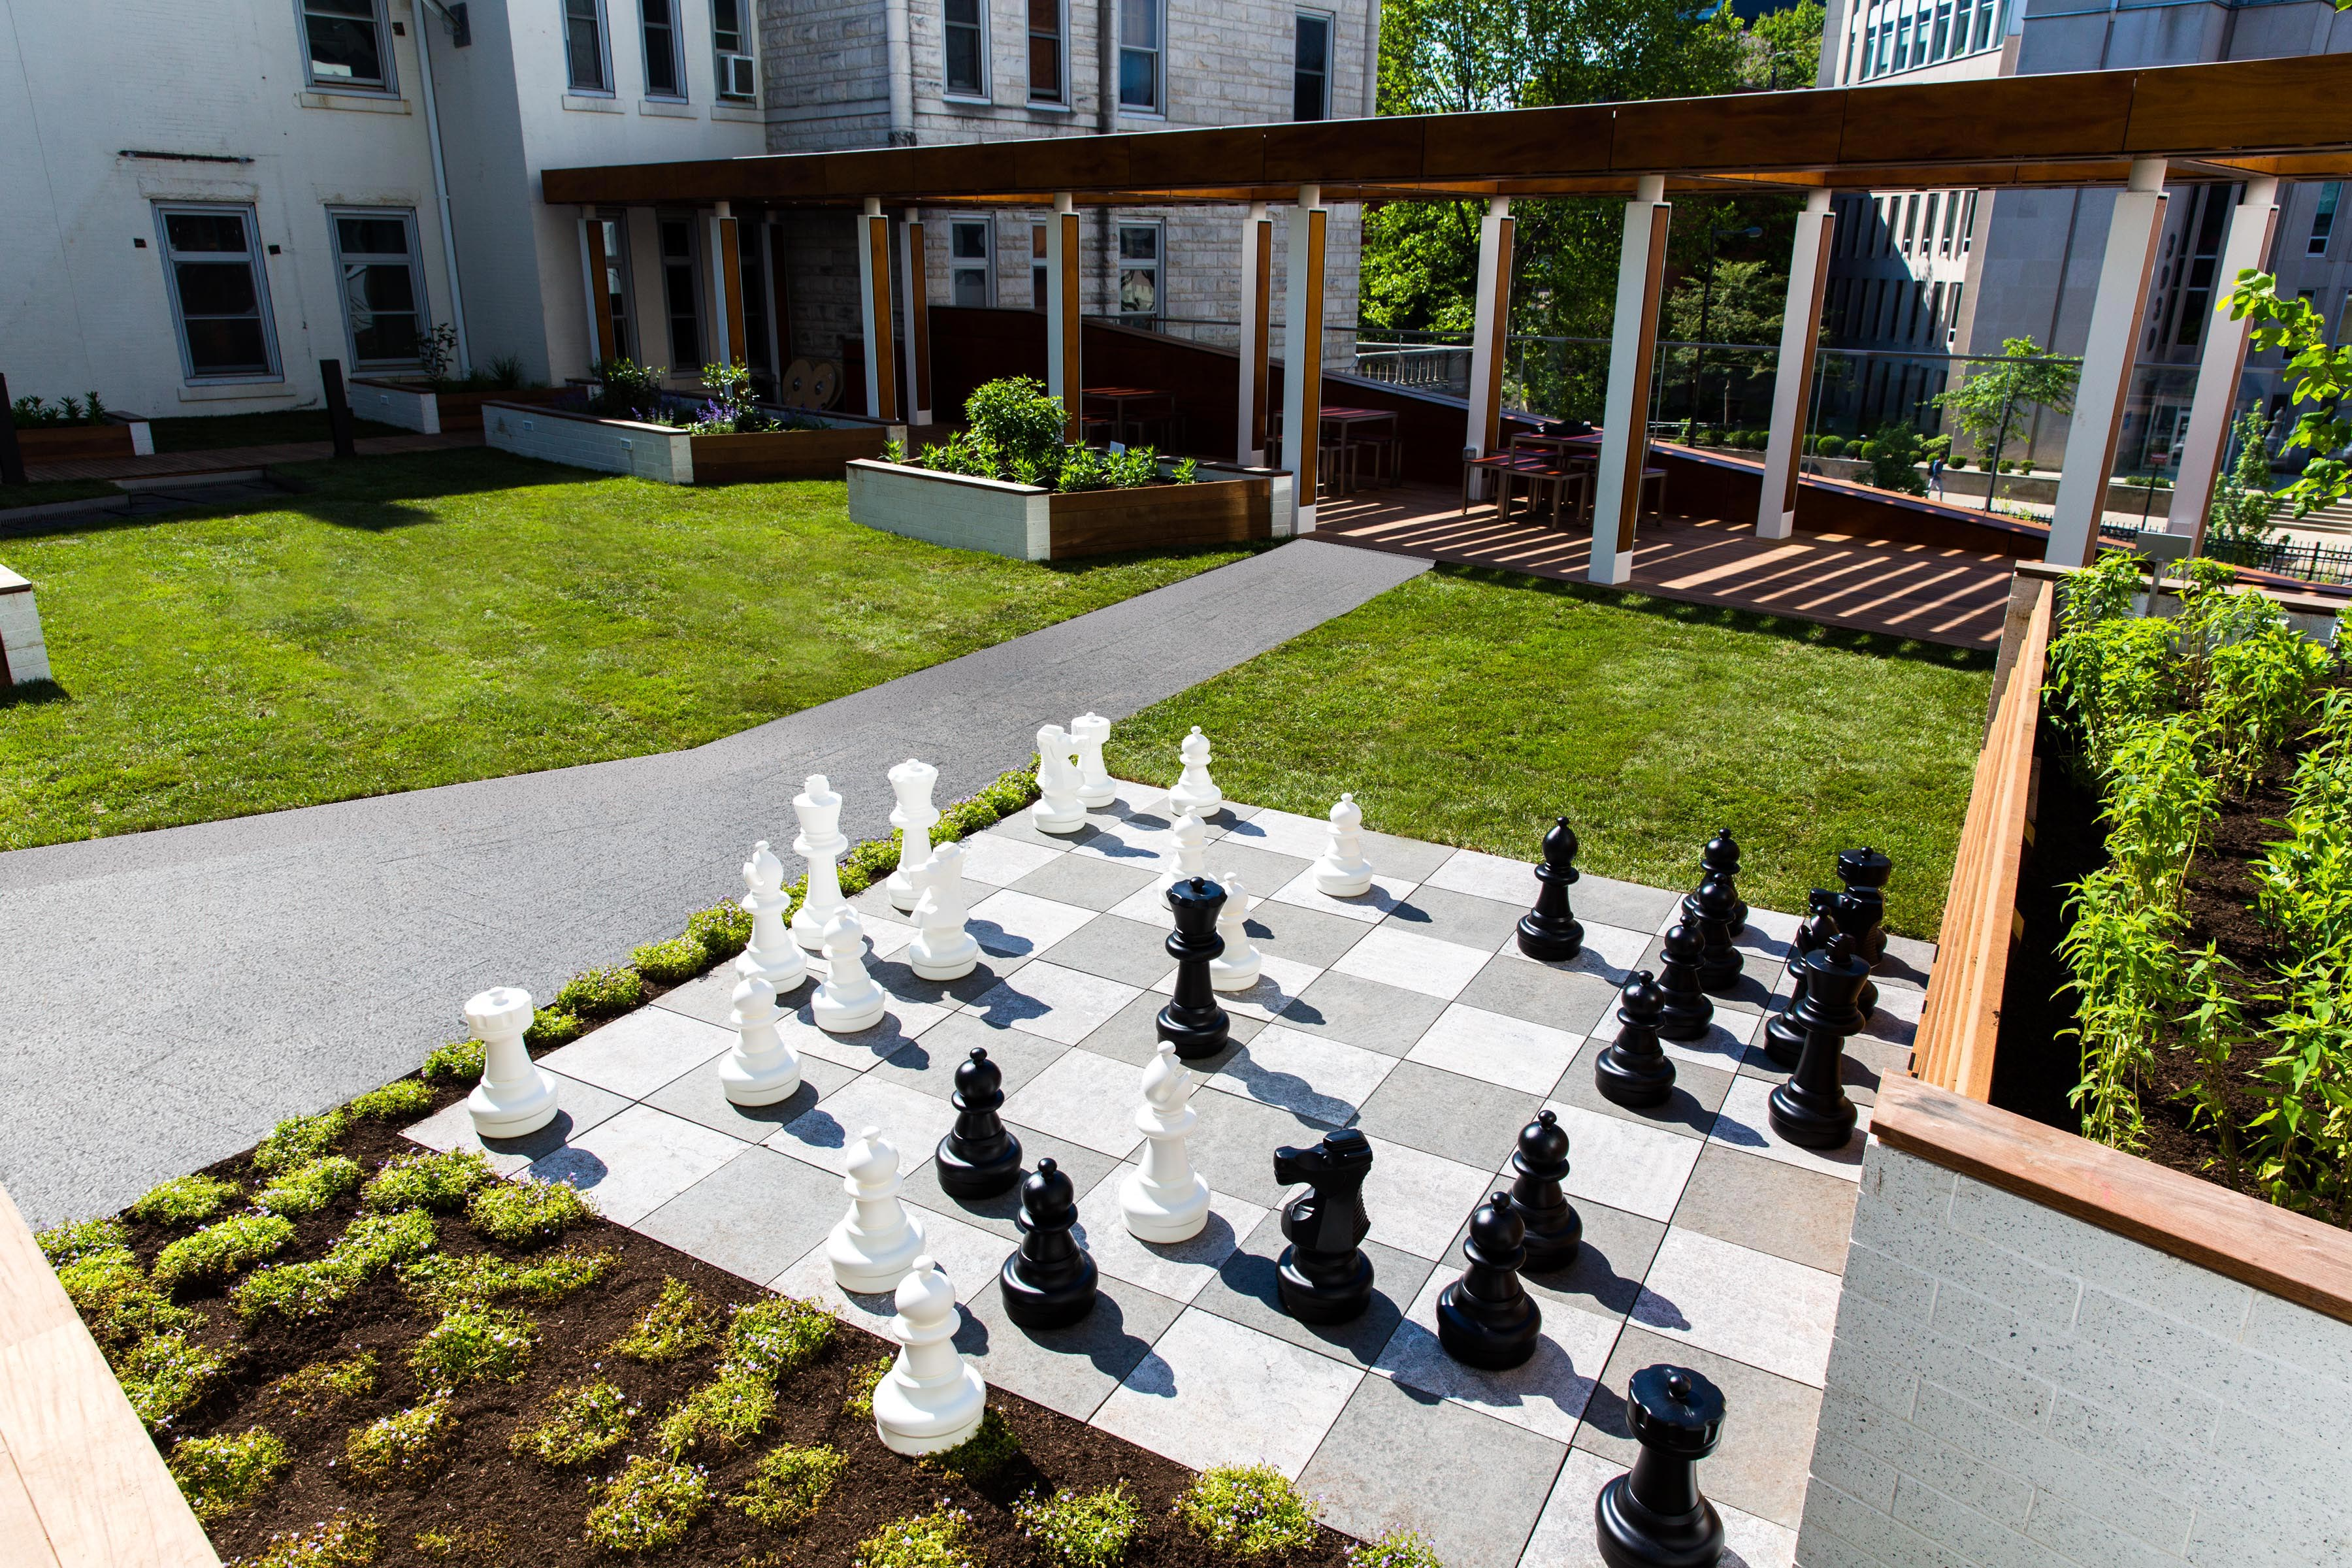 GCW created the planting design for the green roof and developed and installed a life-sized chess board made of natural stone pavers on a pedestal system.